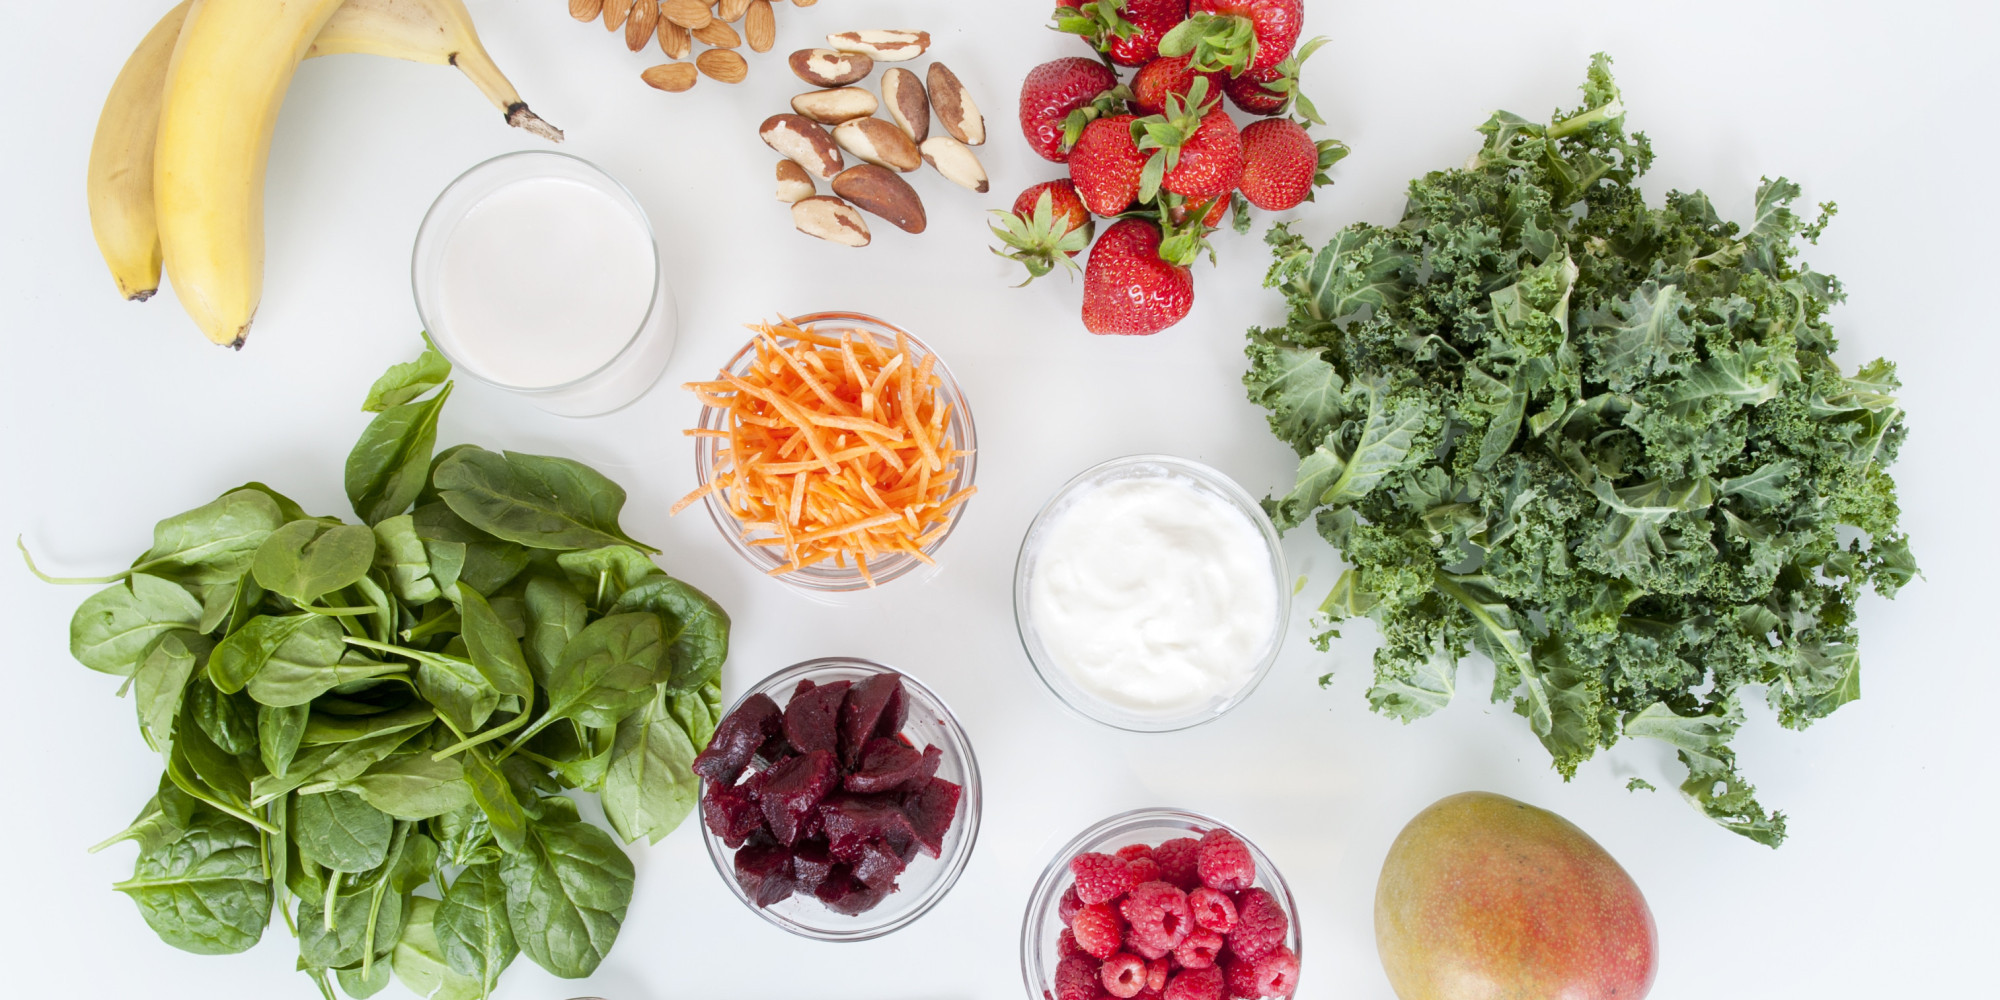 Ingredients For Healthy Smoothies  5 Healthy Smoothies Nutrition Experts Swear By And They